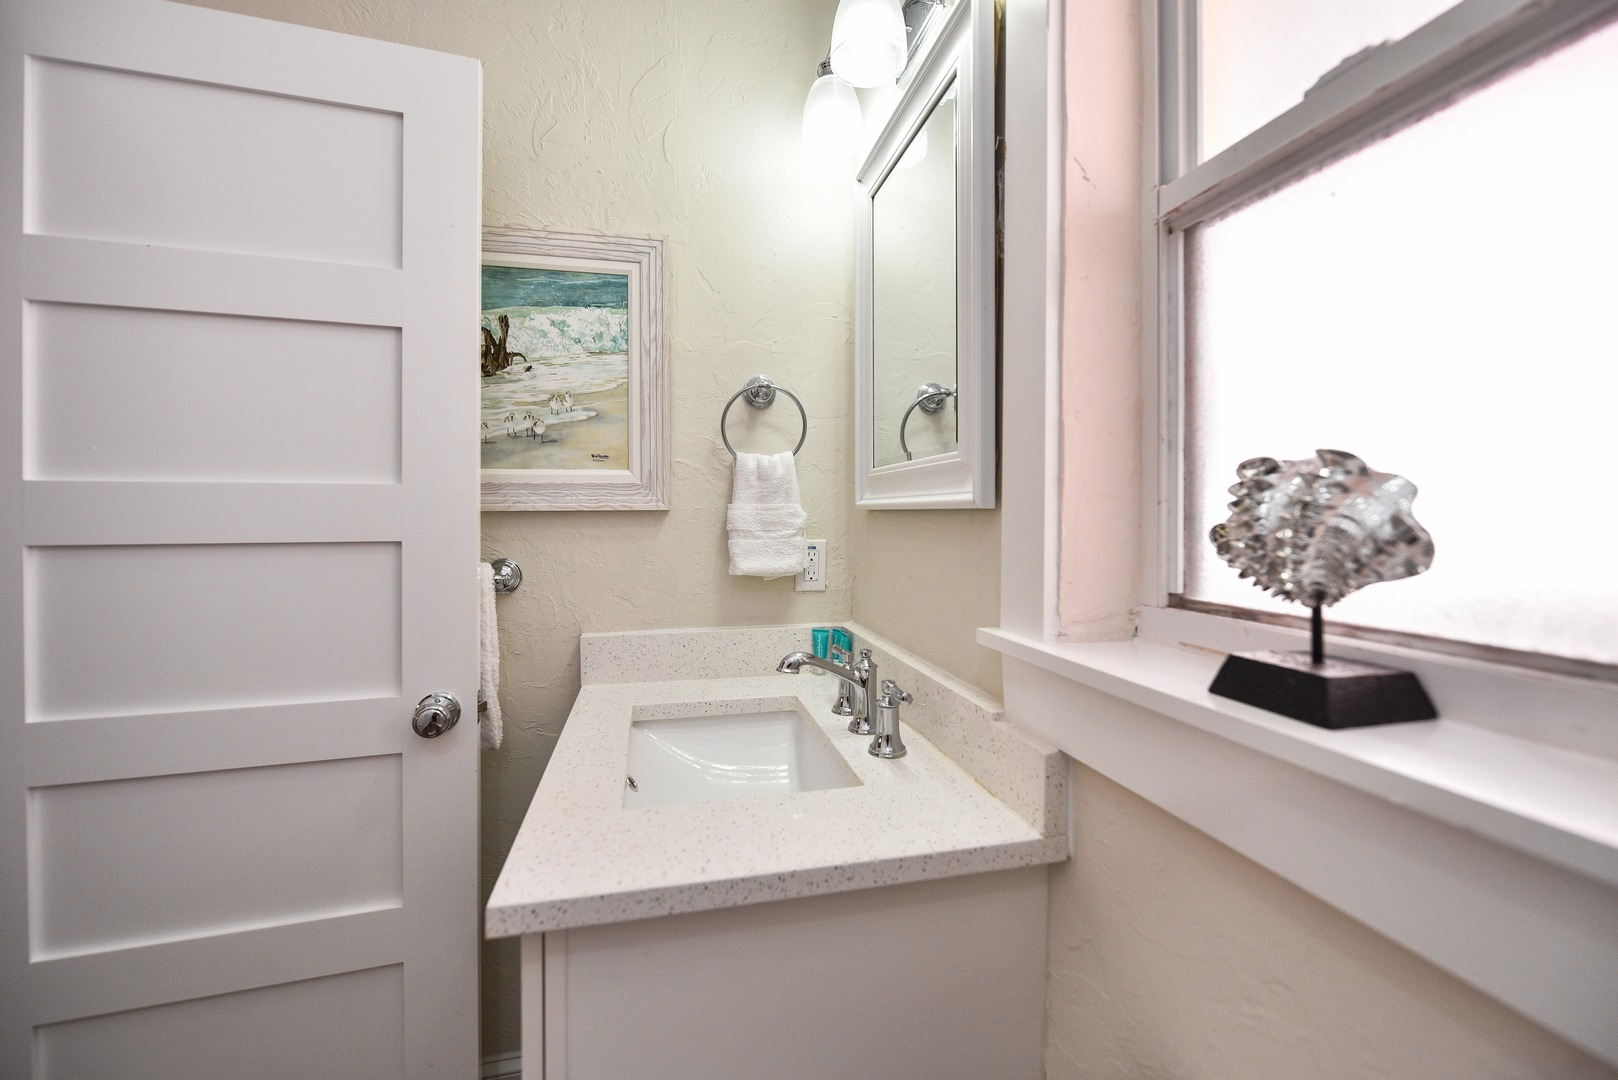 Easy Access Shower and Large Vanity